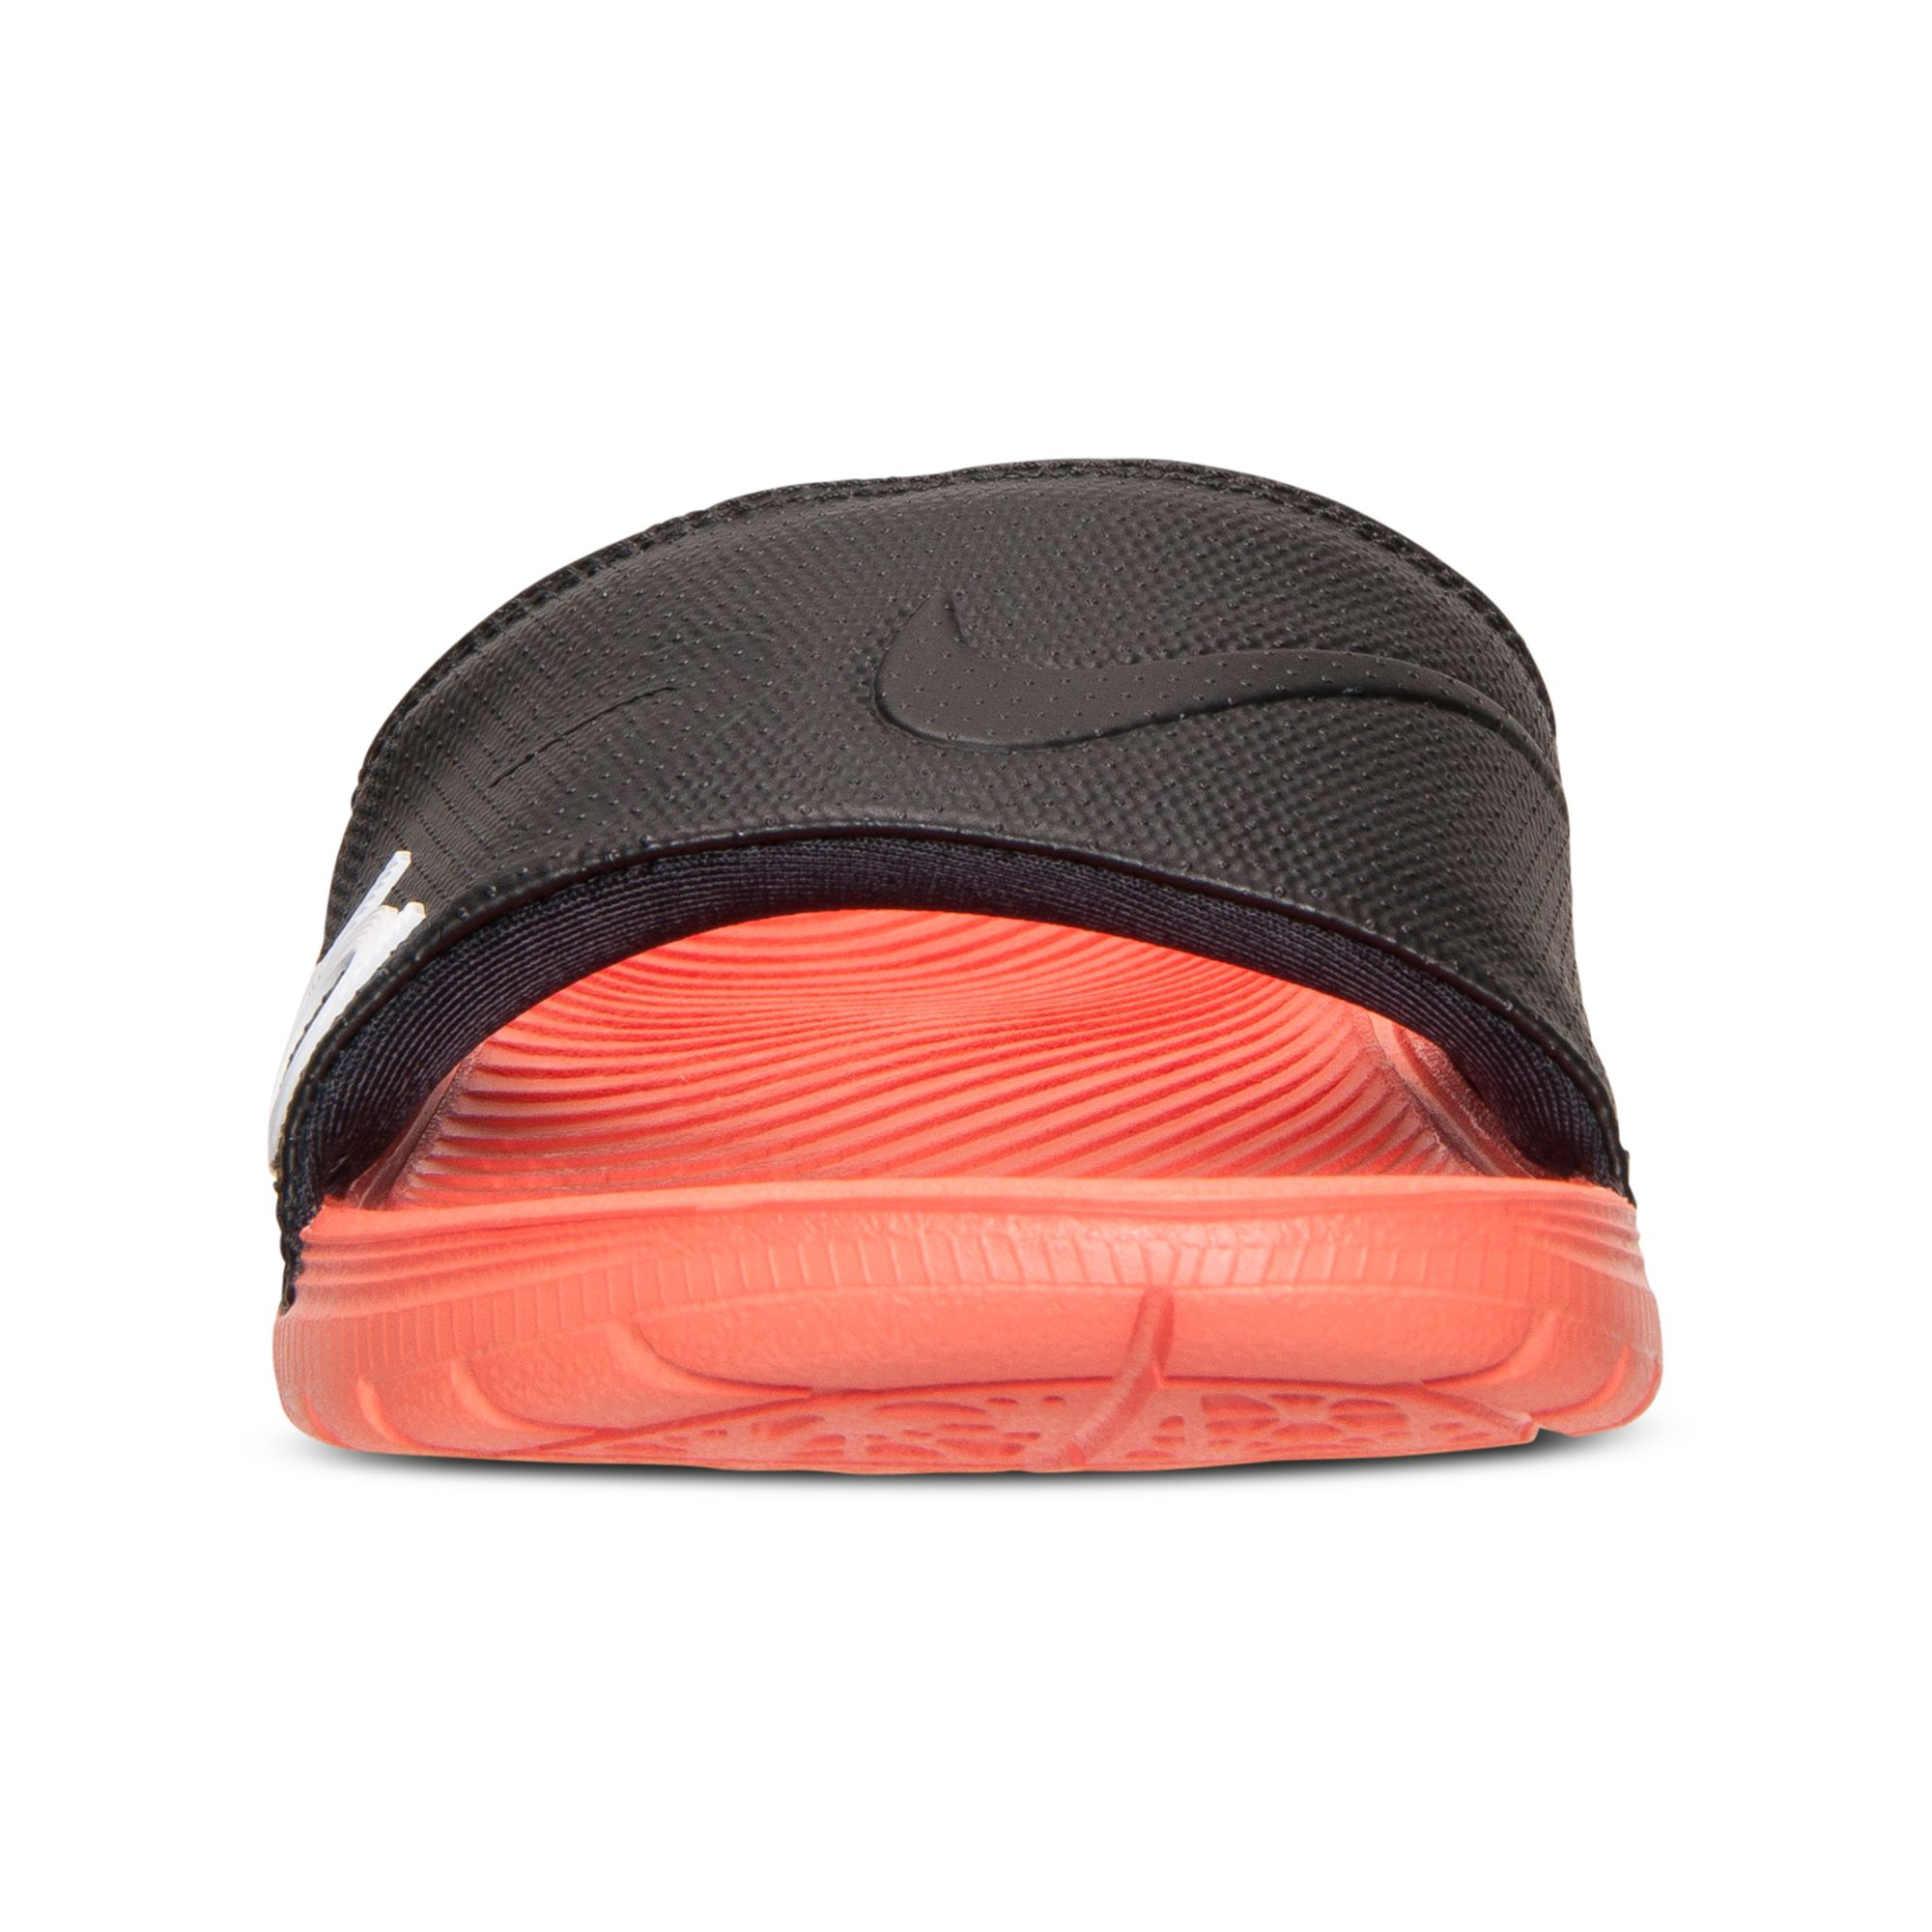 Nike Mens Solarsoft Kd Slide Sandals From Finish Line In